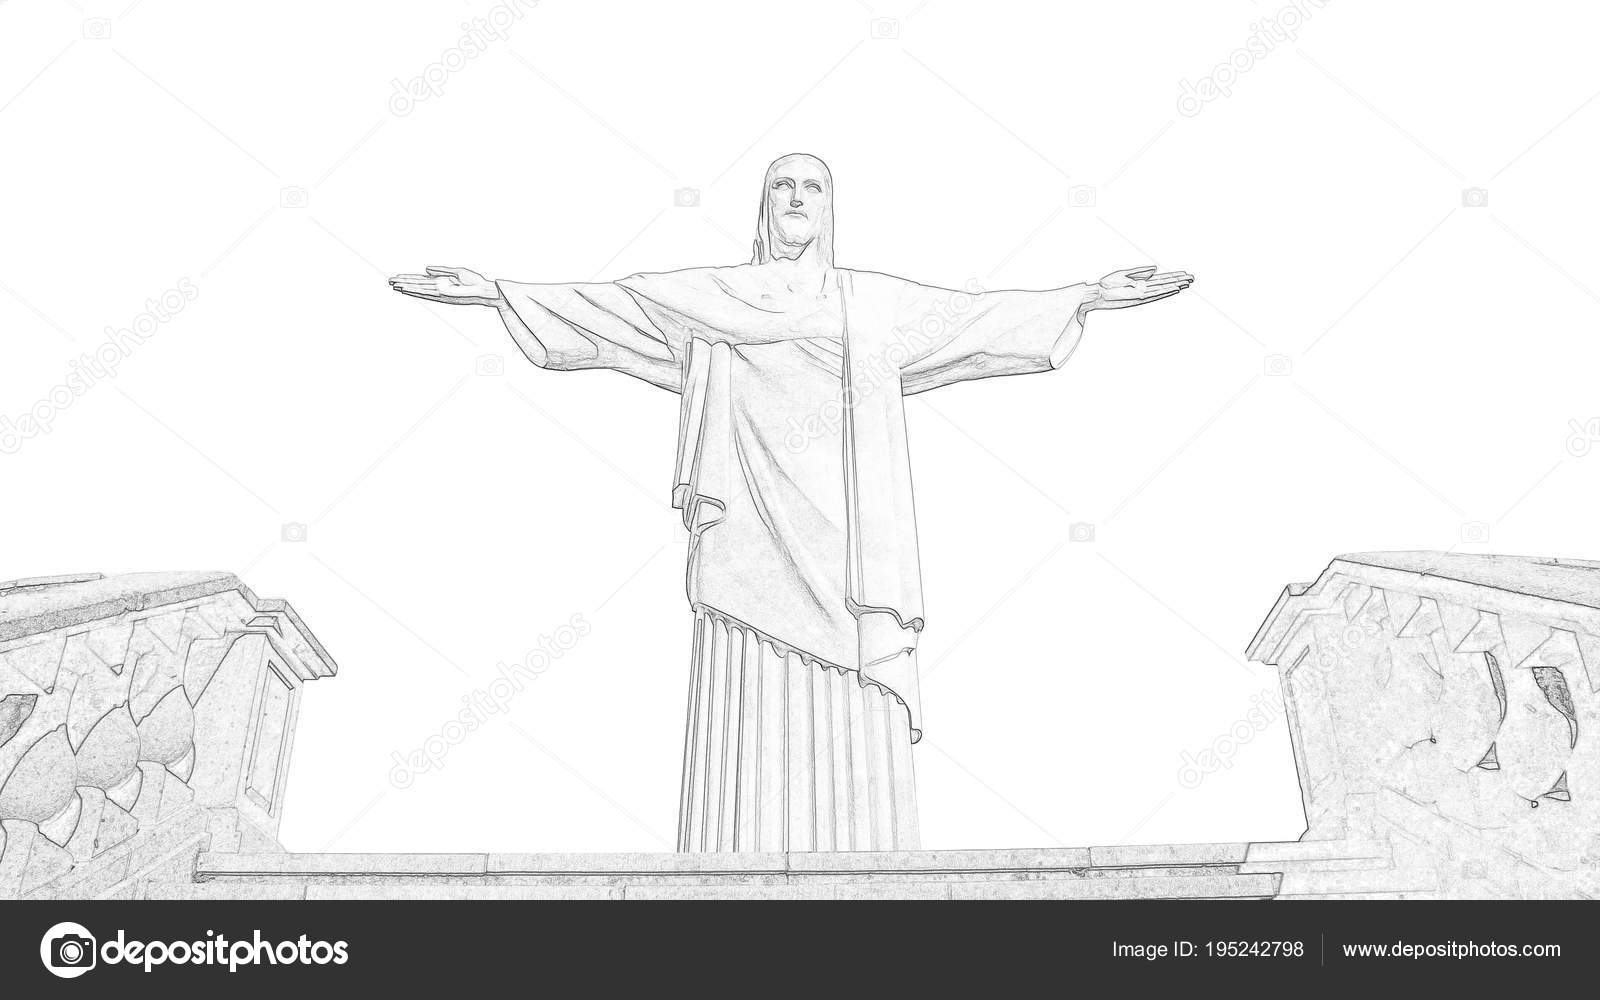 The christ the redeemer statue in rio de janeiro brazil freehand pencil sketch historical showplace for print souvenirs postcards t shirts